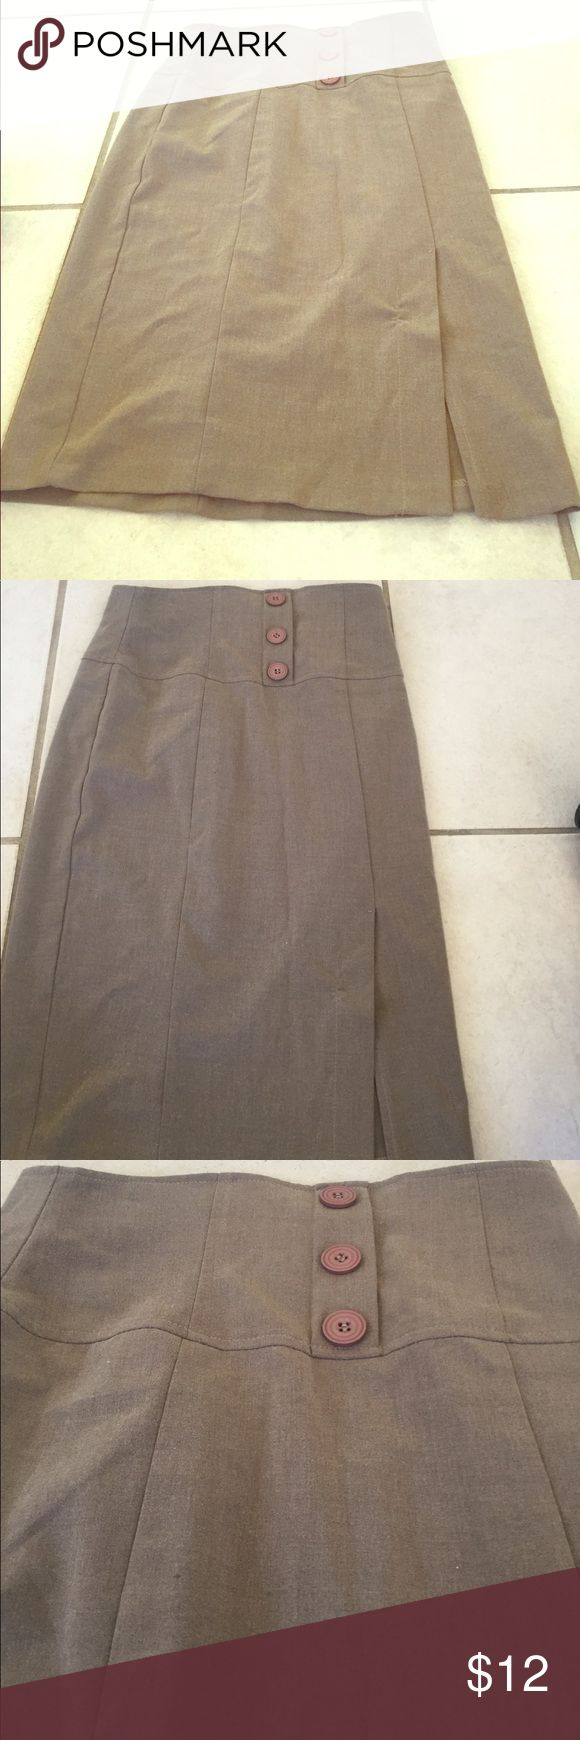 ❤️Beautiful soft brown pencil skirt medium❤️ Beautiful brown soft pencil skirt size medium by Xi good condition zip up and back fitted at waist pencil affect three buttons in the front to embellish as well as slit in the front true to size between a six and eight the skirt will fit A great staple skirt for your collection xi Skirts Pencil